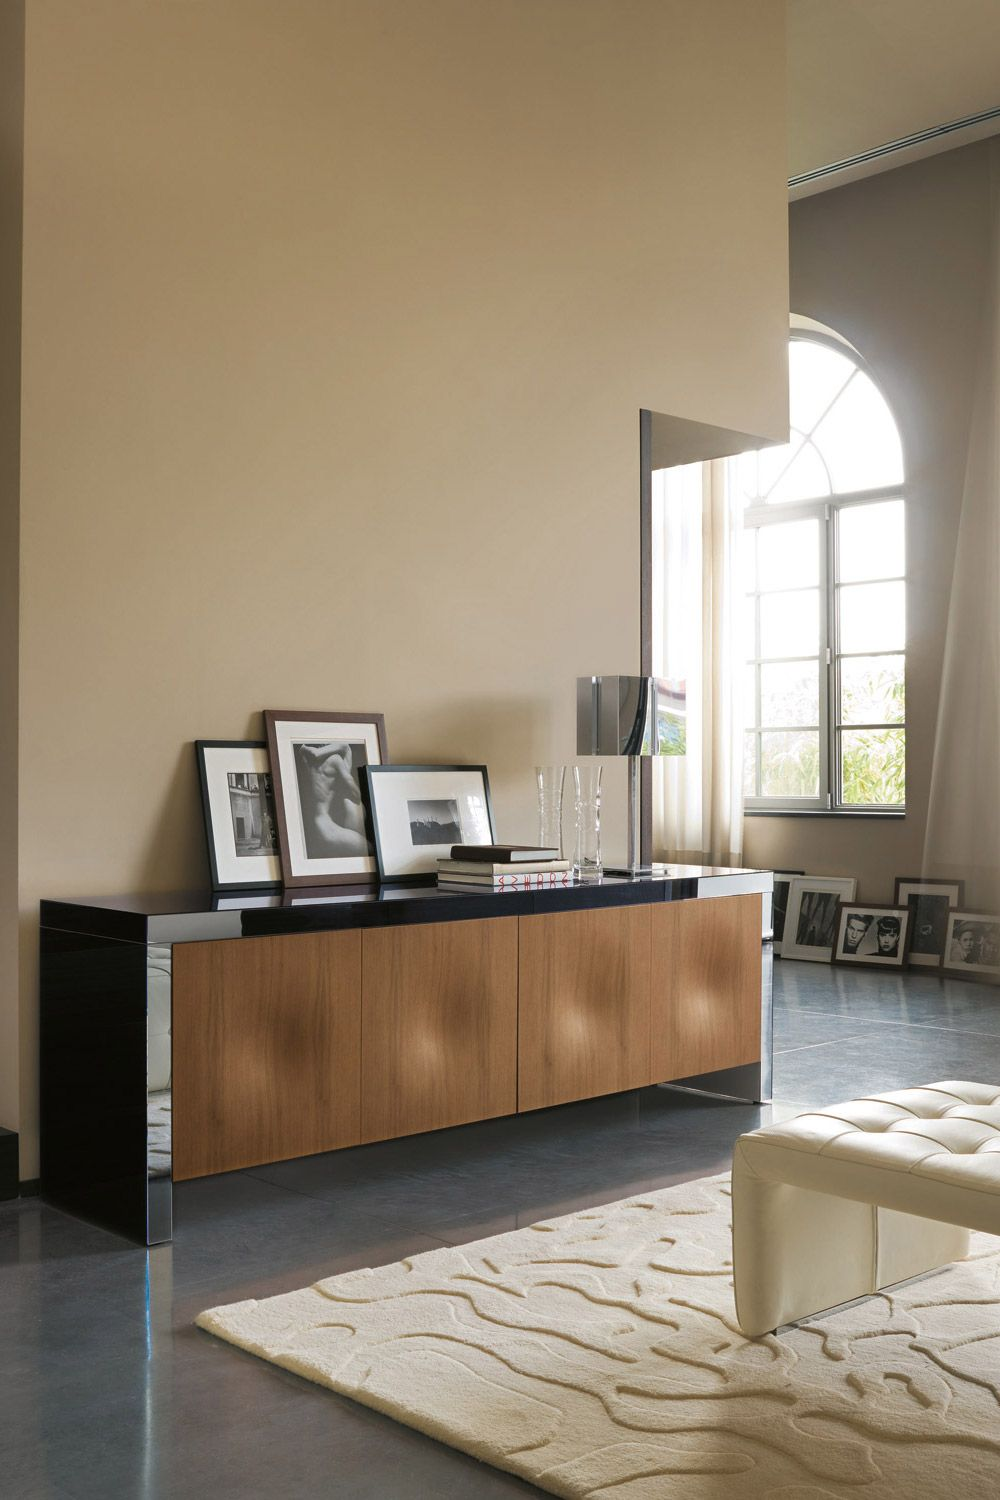 Furniture meubles porada s r l from italy sleek sideboard